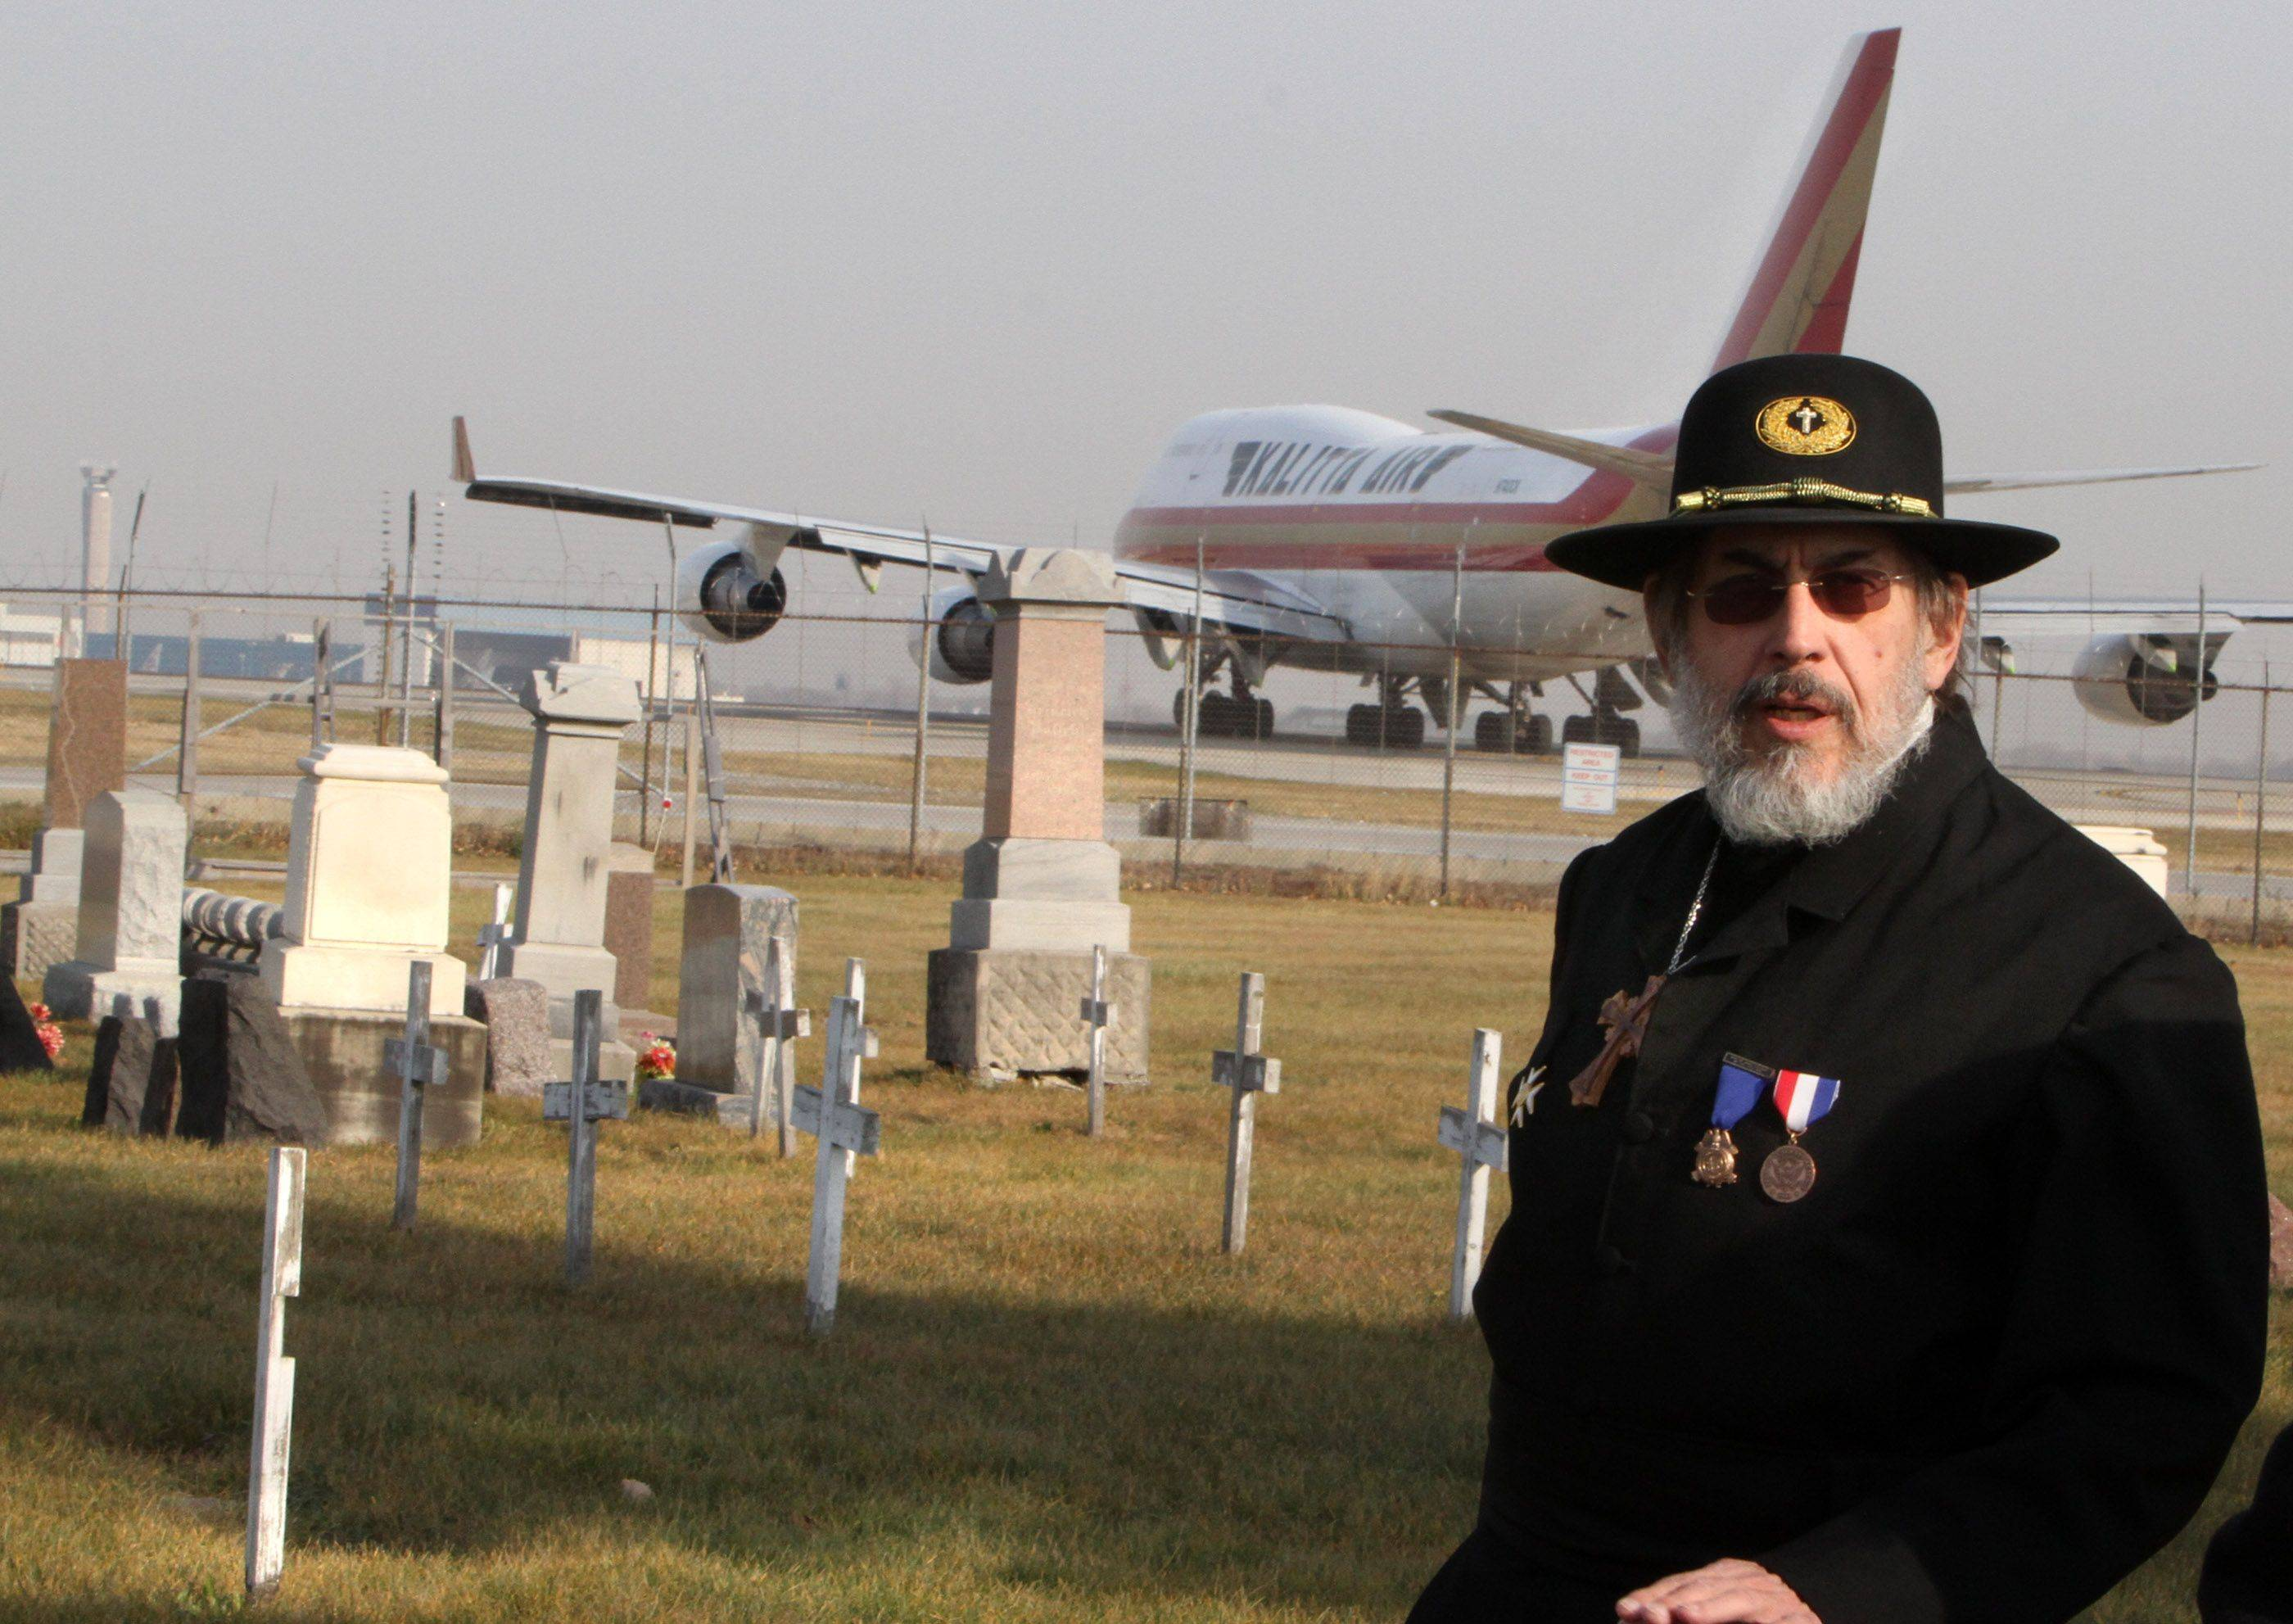 Jerry Kowalski, of Elmhurst, National Chaplain for the Sons of Union Veterans of the Civil War talks after the memorial ceremony on Veterans Day at Johannes Cemetery just south of O'Hare International Airport in Chicago on Thursday, November 11.